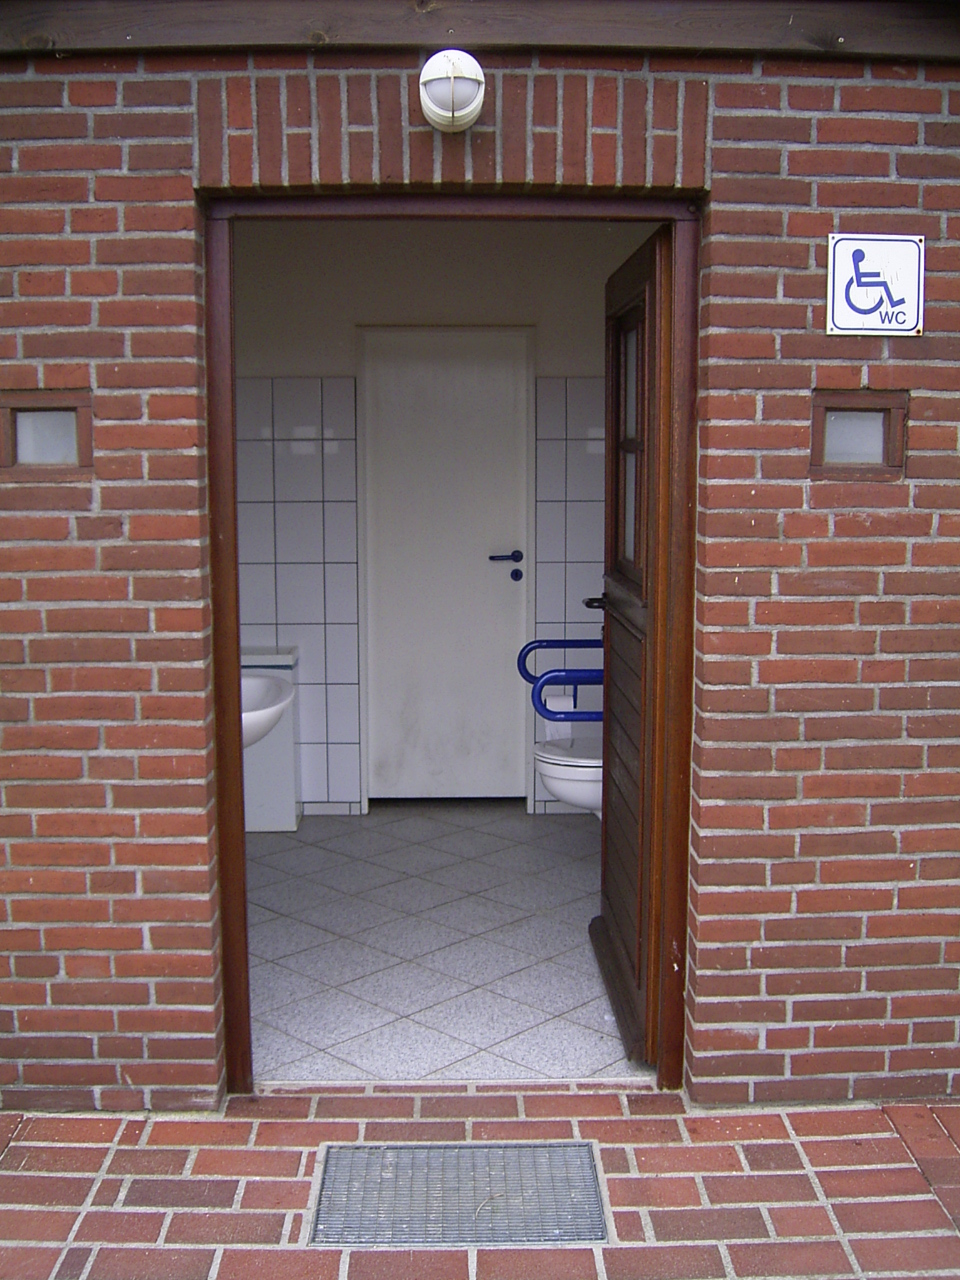 Open door to an accessible toilett